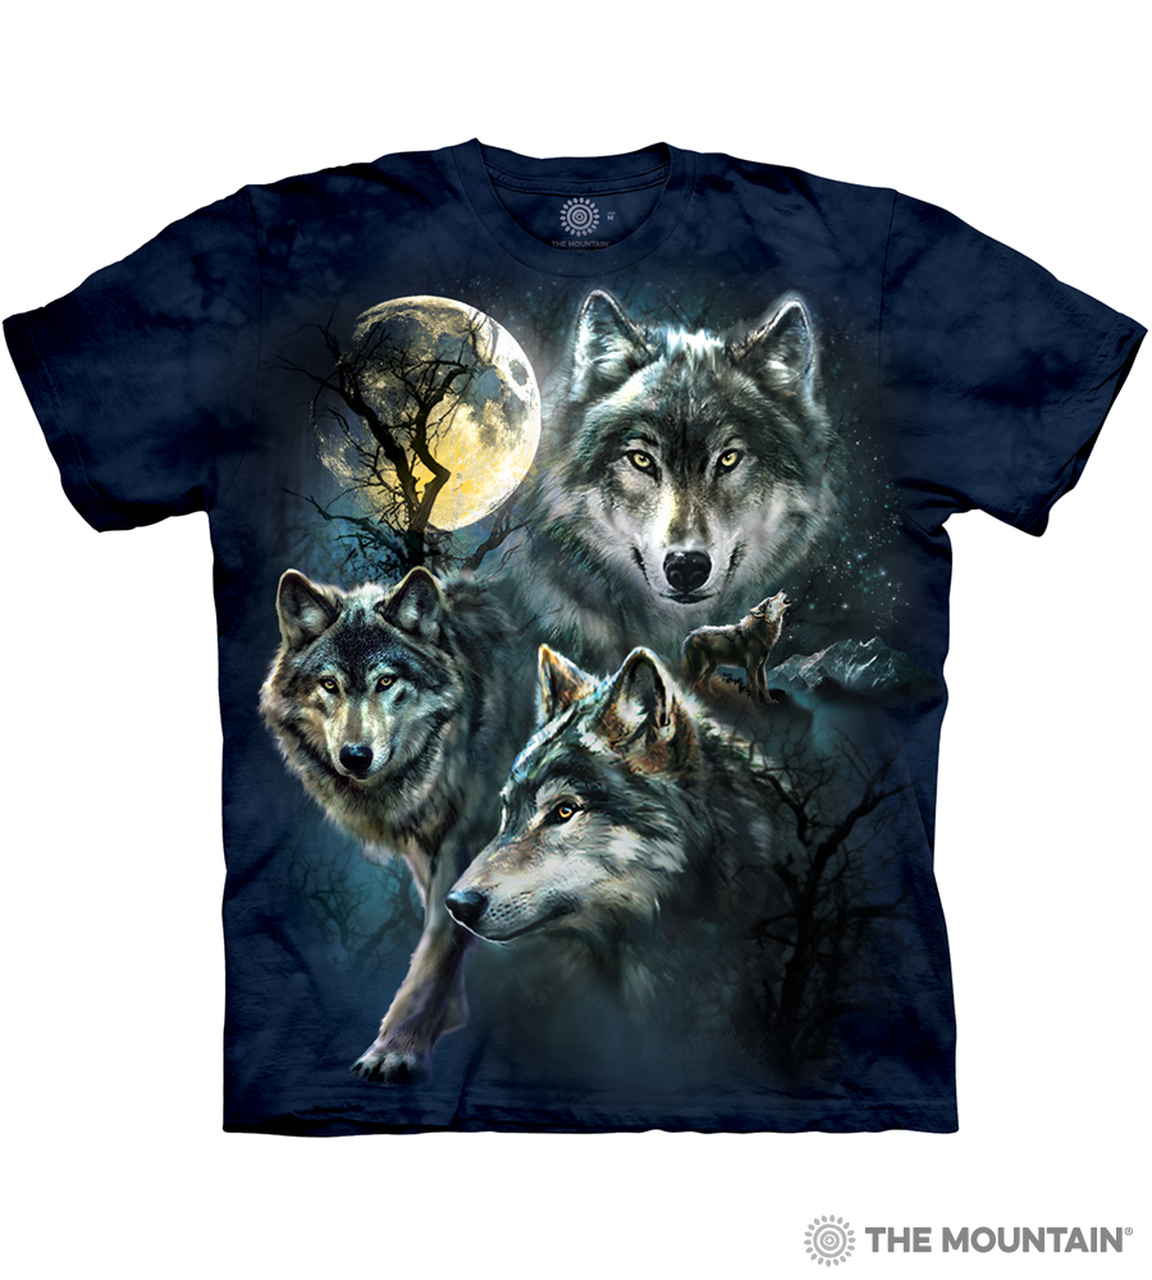 wolves moon mountain collage wolf shirts taz graduation unisex adult yin firbolg yang youth wish themountain saavedra omnilife chart choose